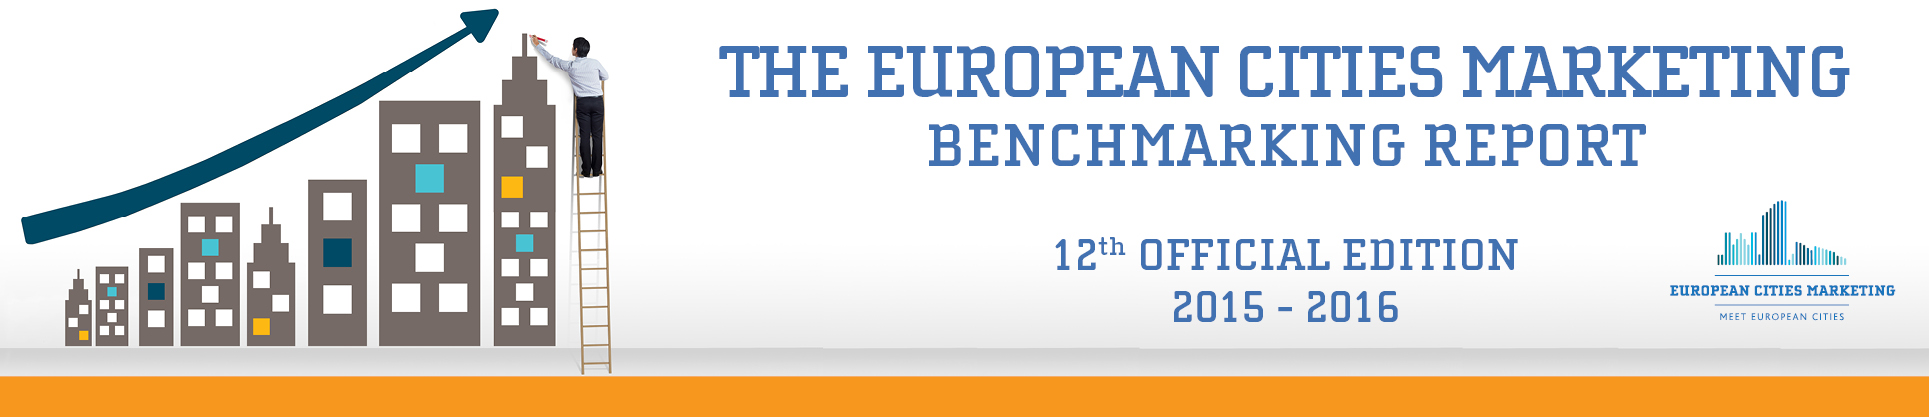 ECM Benchmarking Report 2015-2016